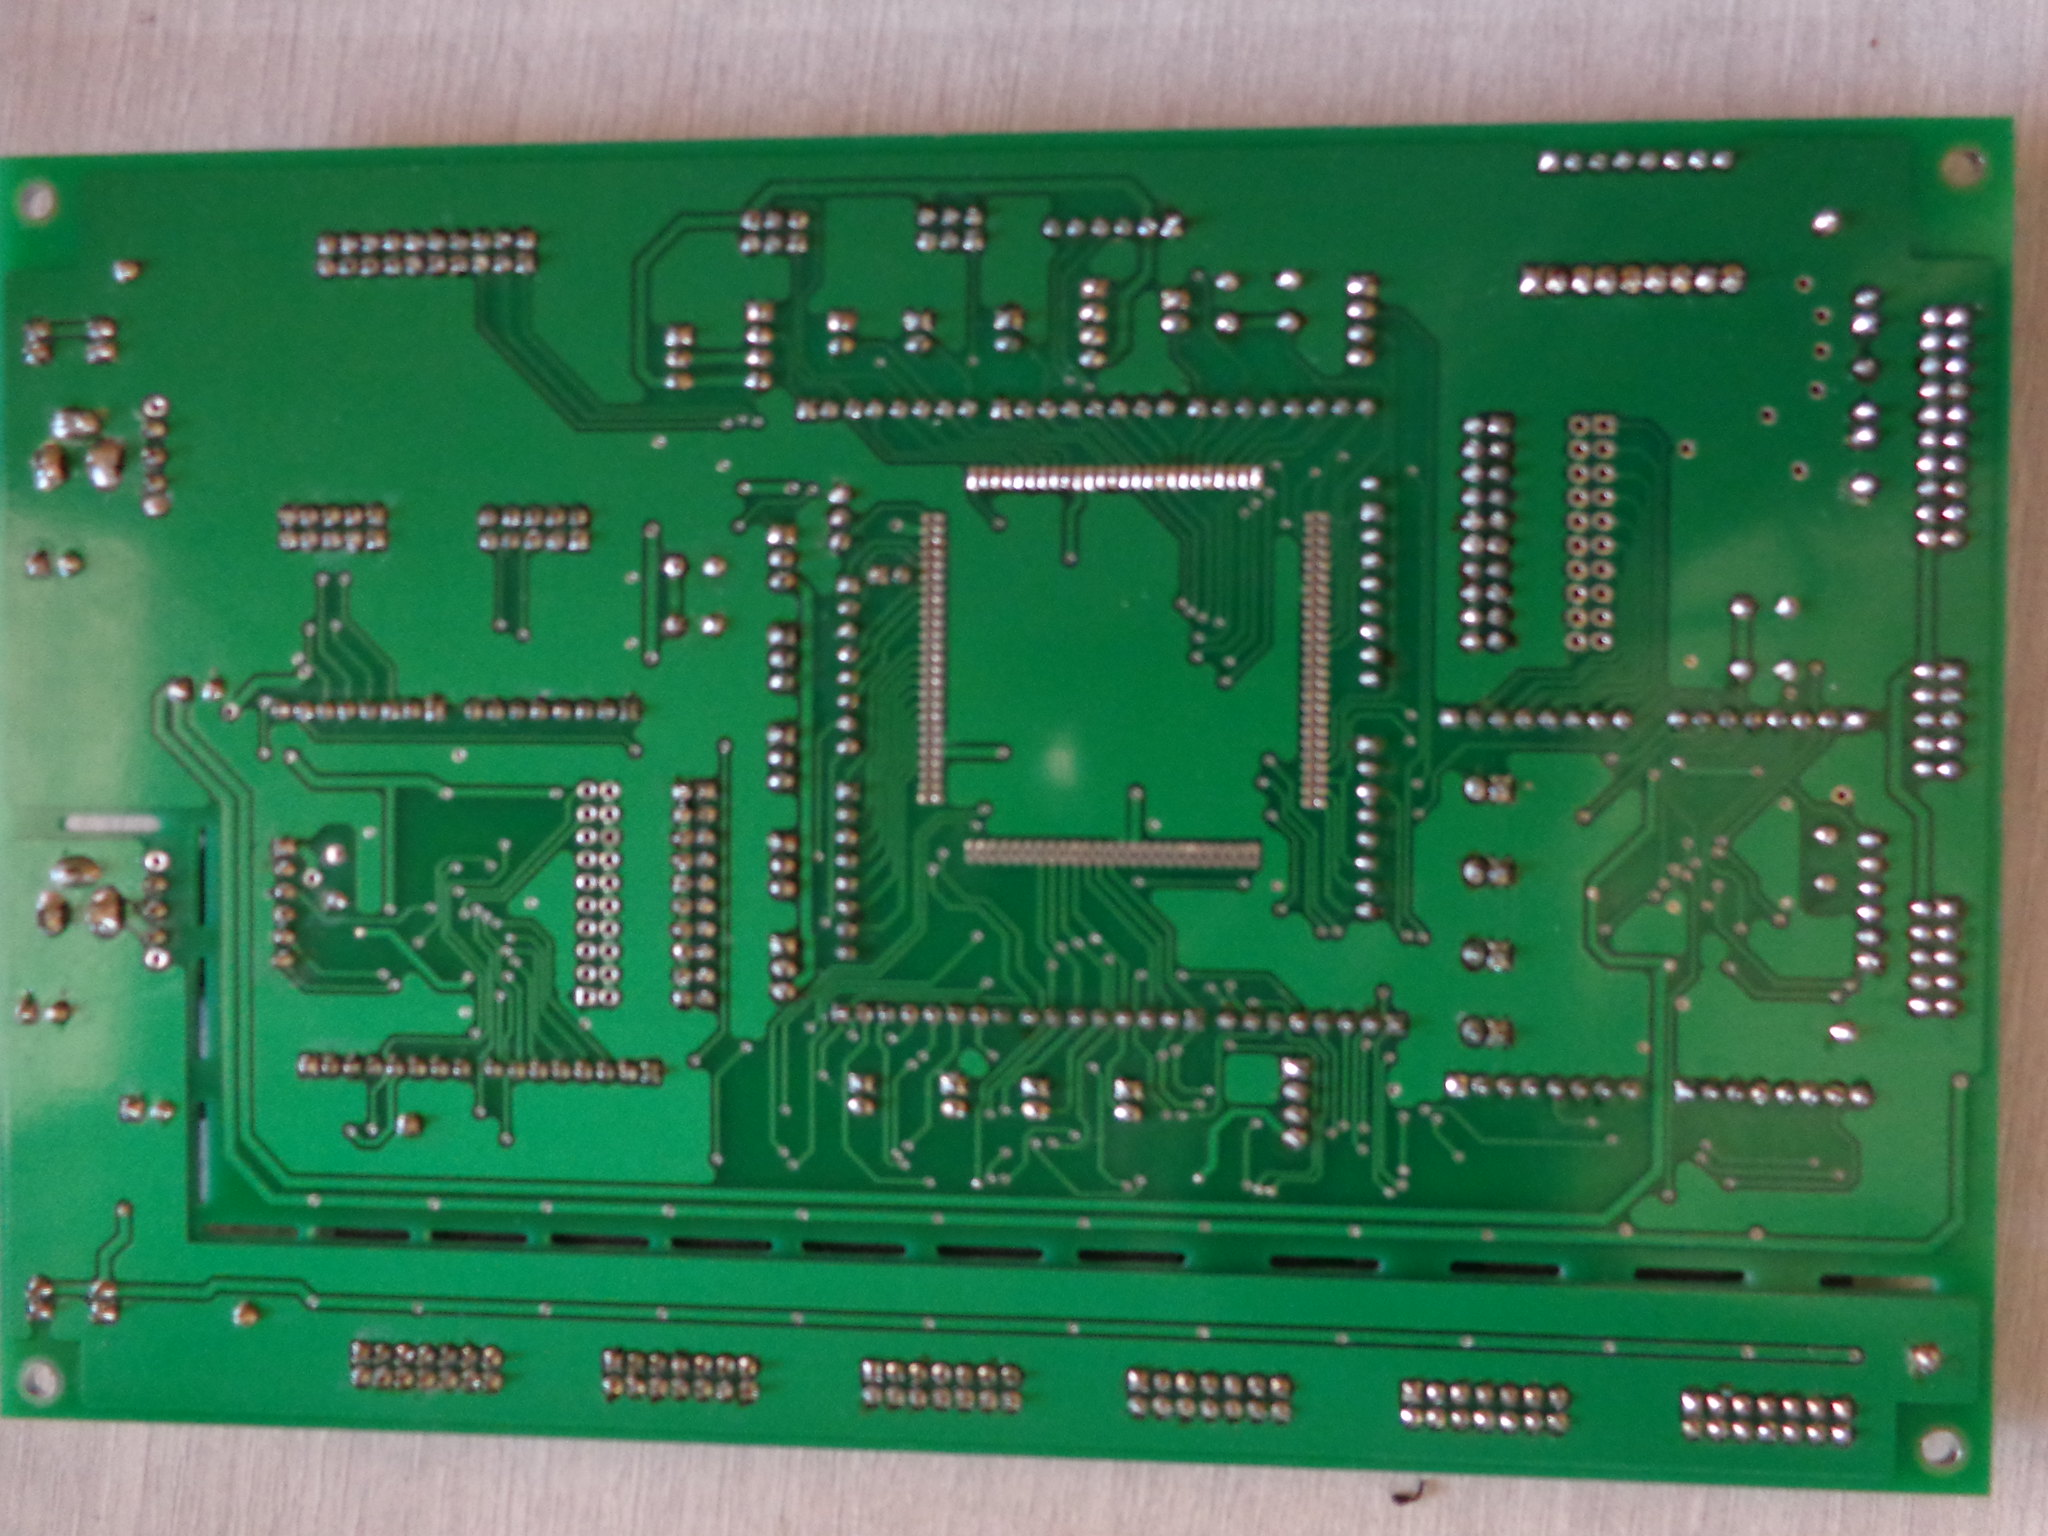 Motherboard with three ATMEL micro-controllers